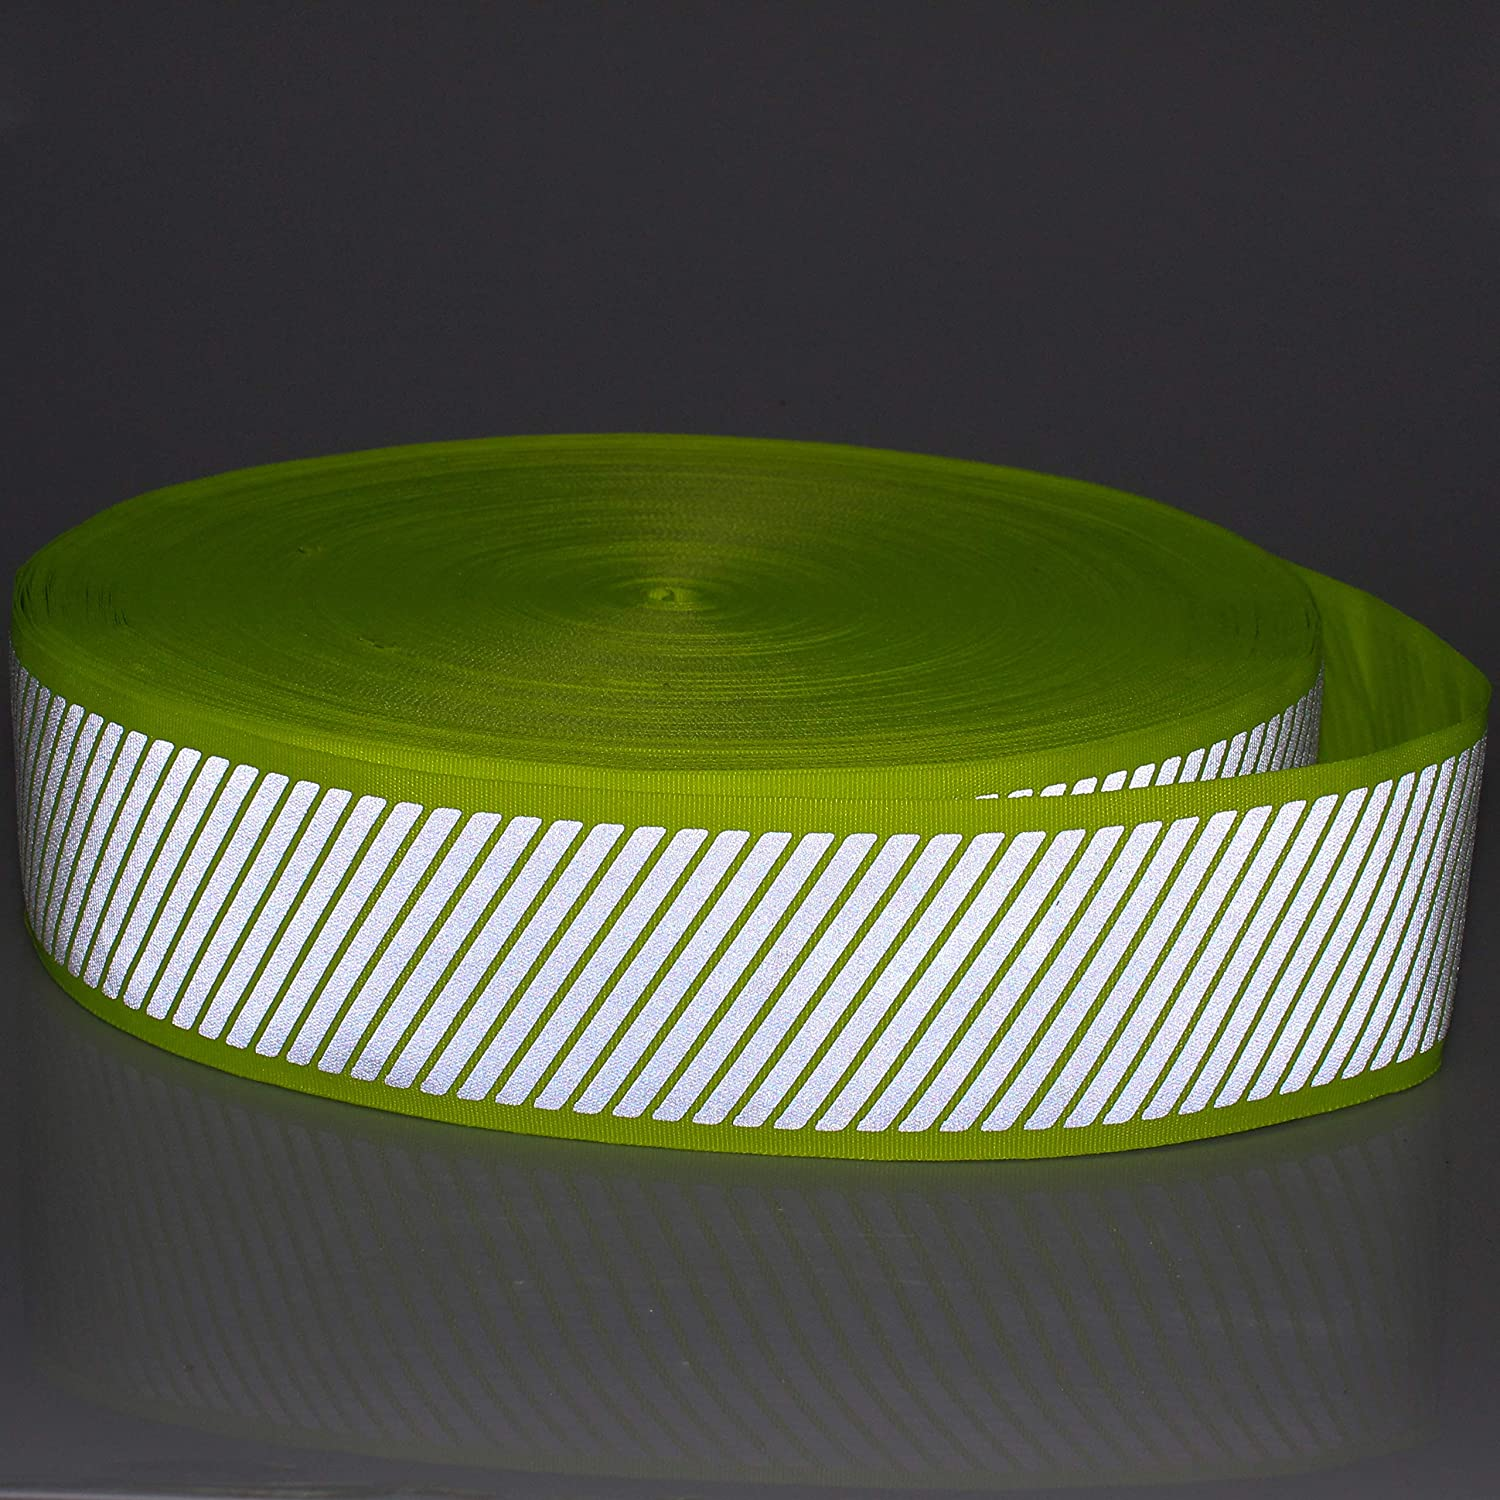 High Visibility Stripe Reflective Fabric Tape Green Webbing Ribbon Sewing On to Clothes 2 x 16.5ft W33